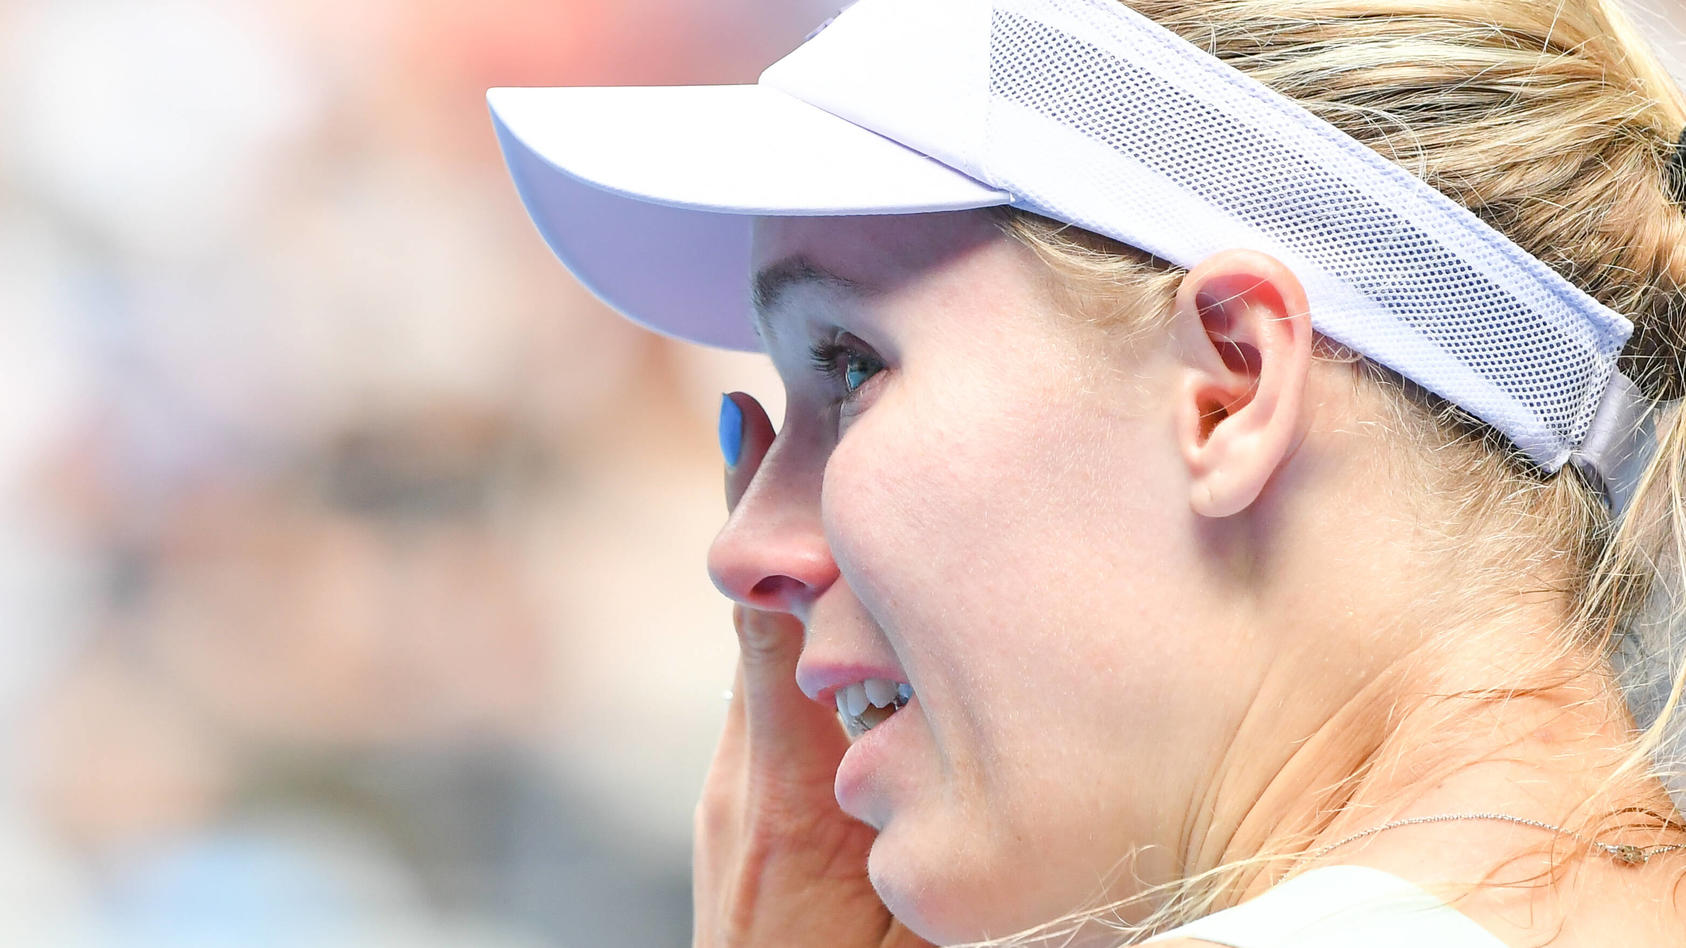 January 24, 2020: CAROLINE WOZNIACKI (DEN) retires from tennis after losing to ONS JABEUR (TUN) on Rod Laver Arena in a